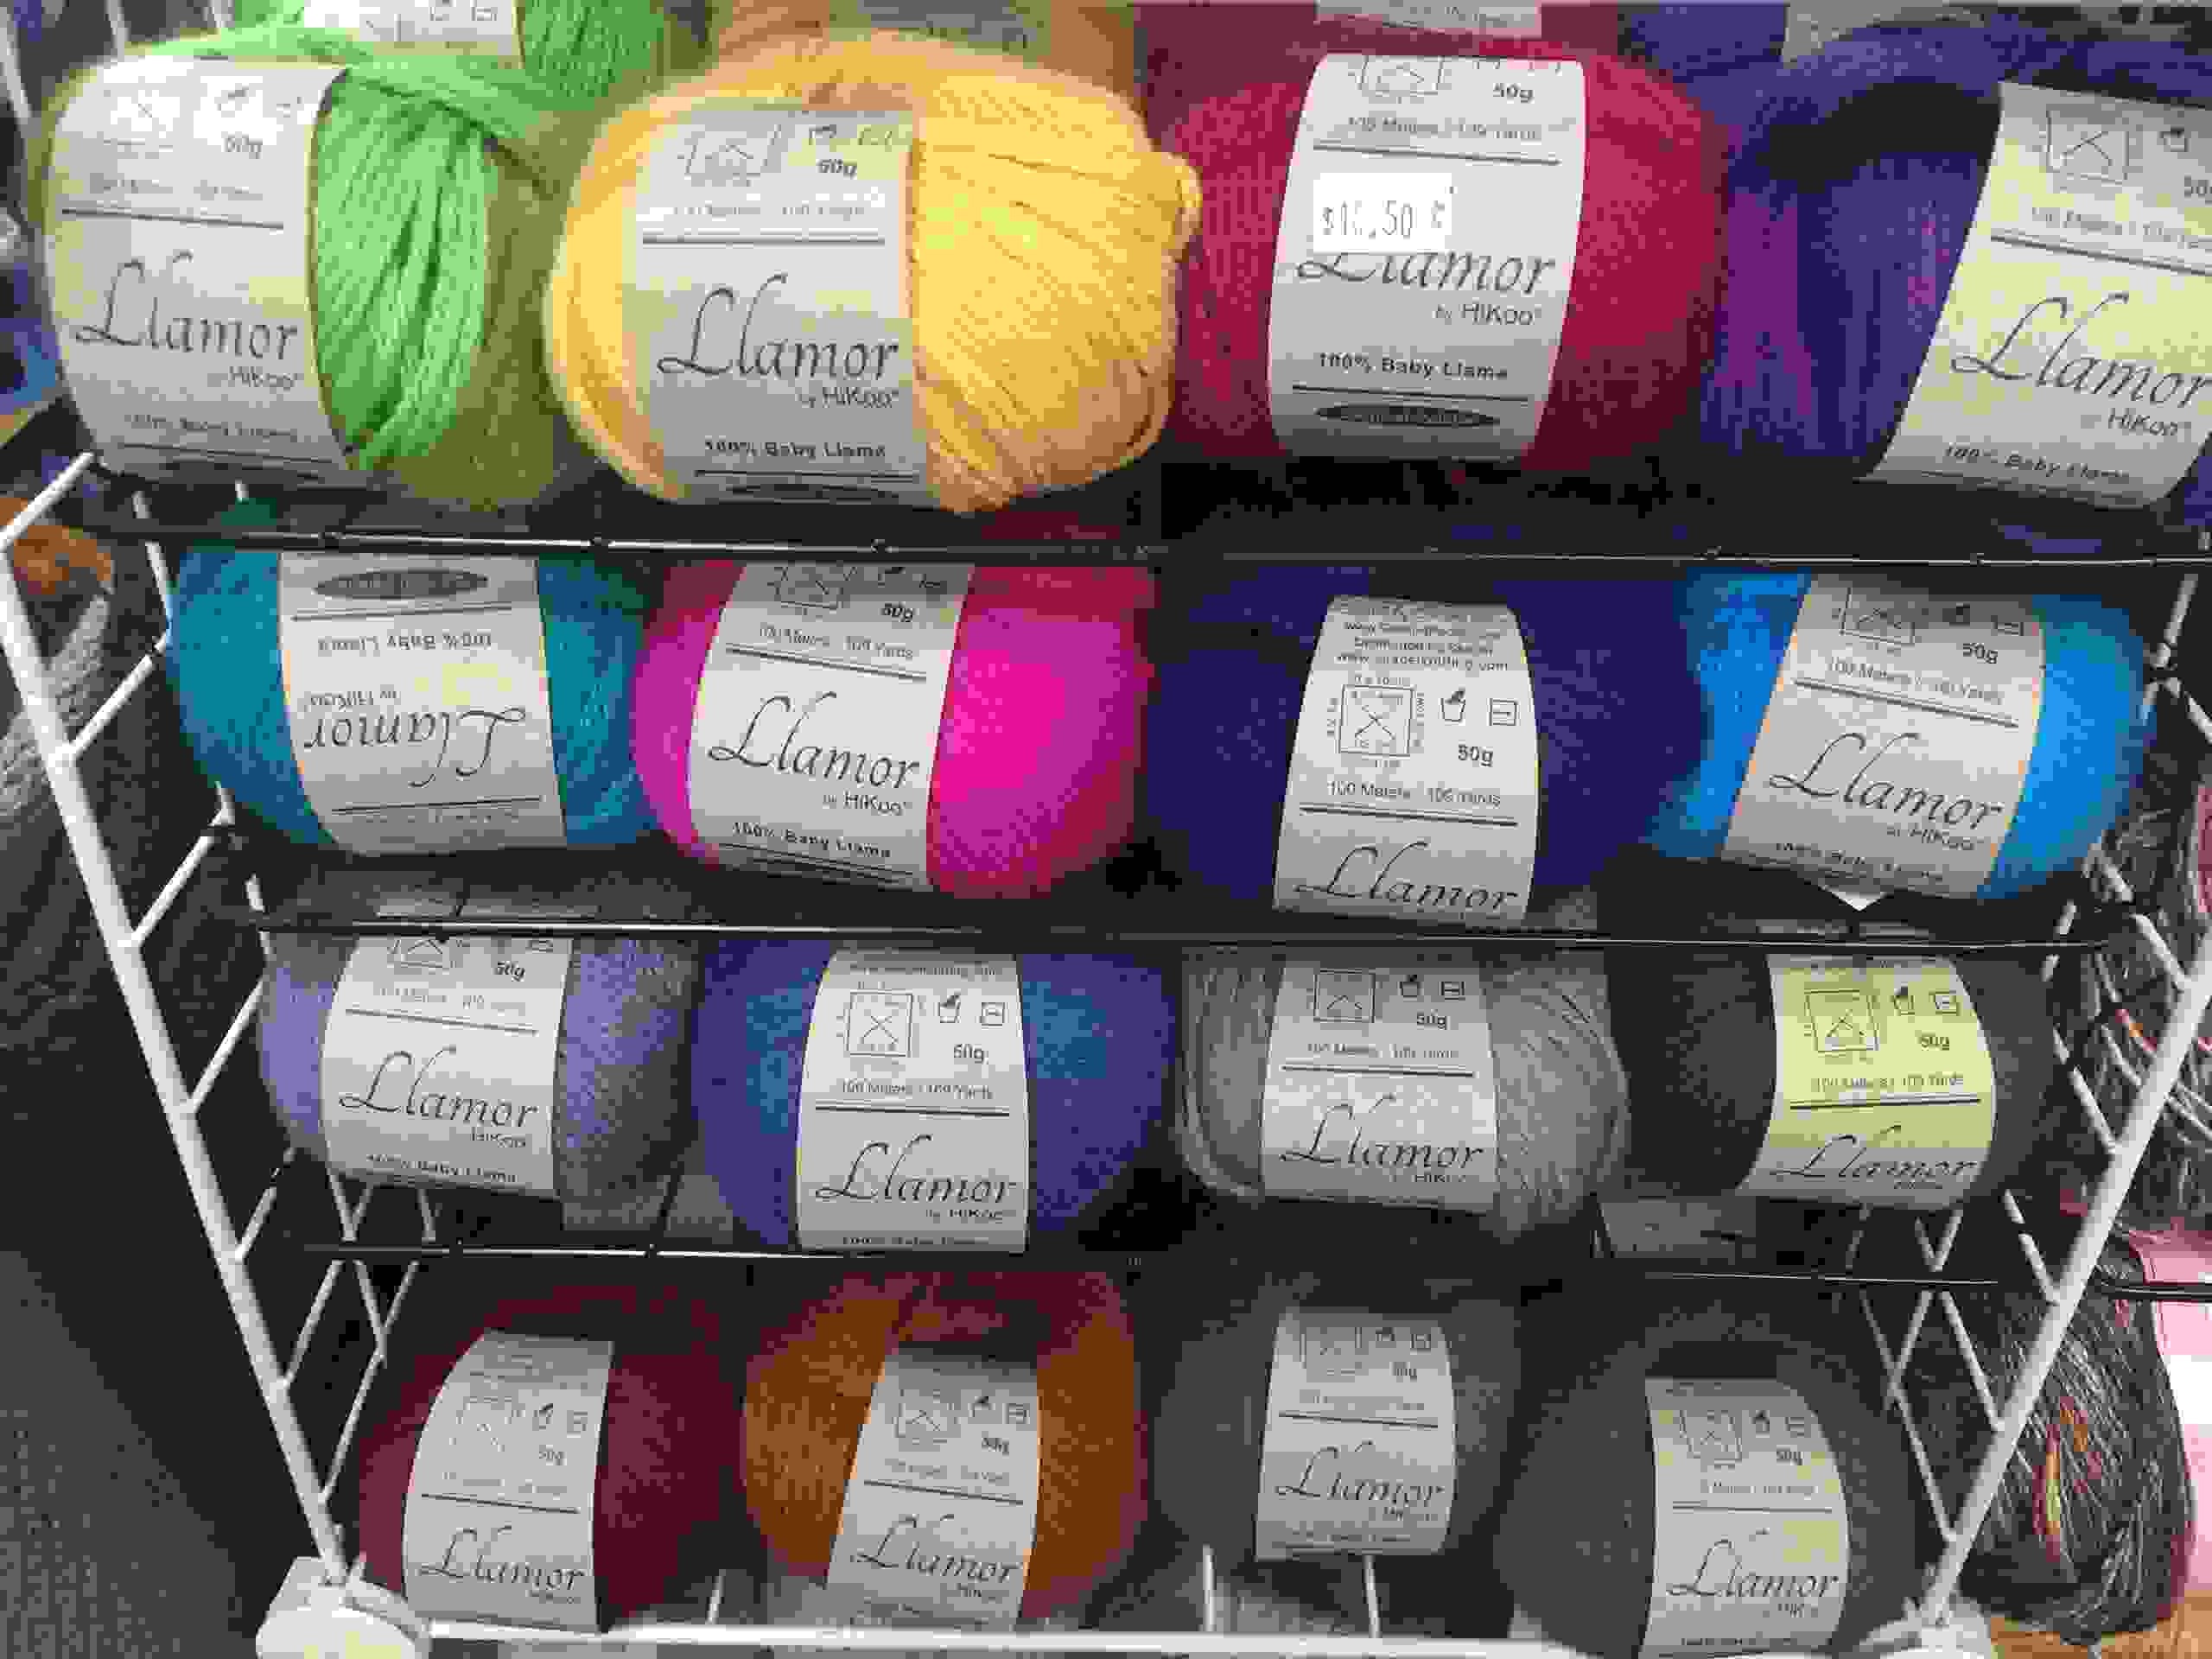 balls of yarn on shelves in various colors